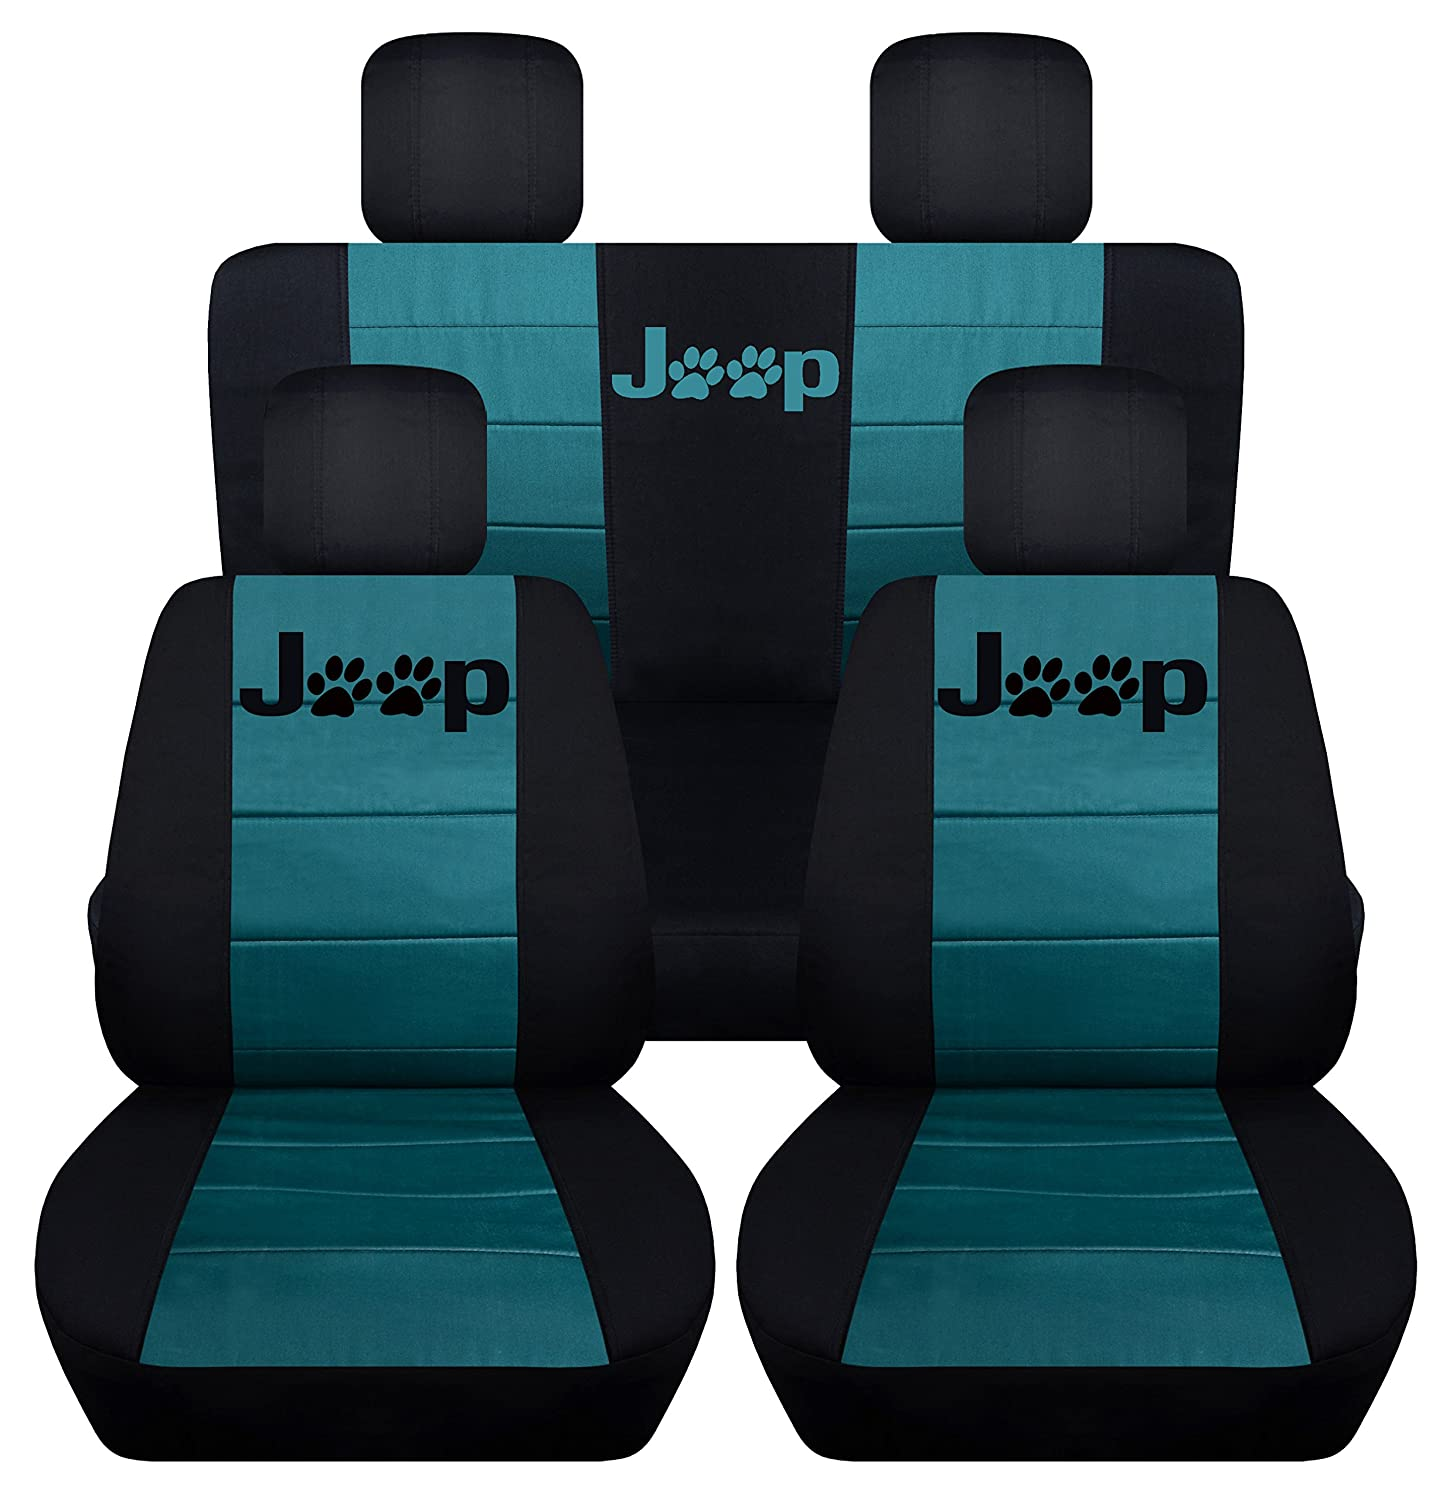 Designcovers Fits 2013 to 2017 Jeep Wrangler 4 Door Paw Print Seat Covers 21 Color Options (Black and Lime Green)